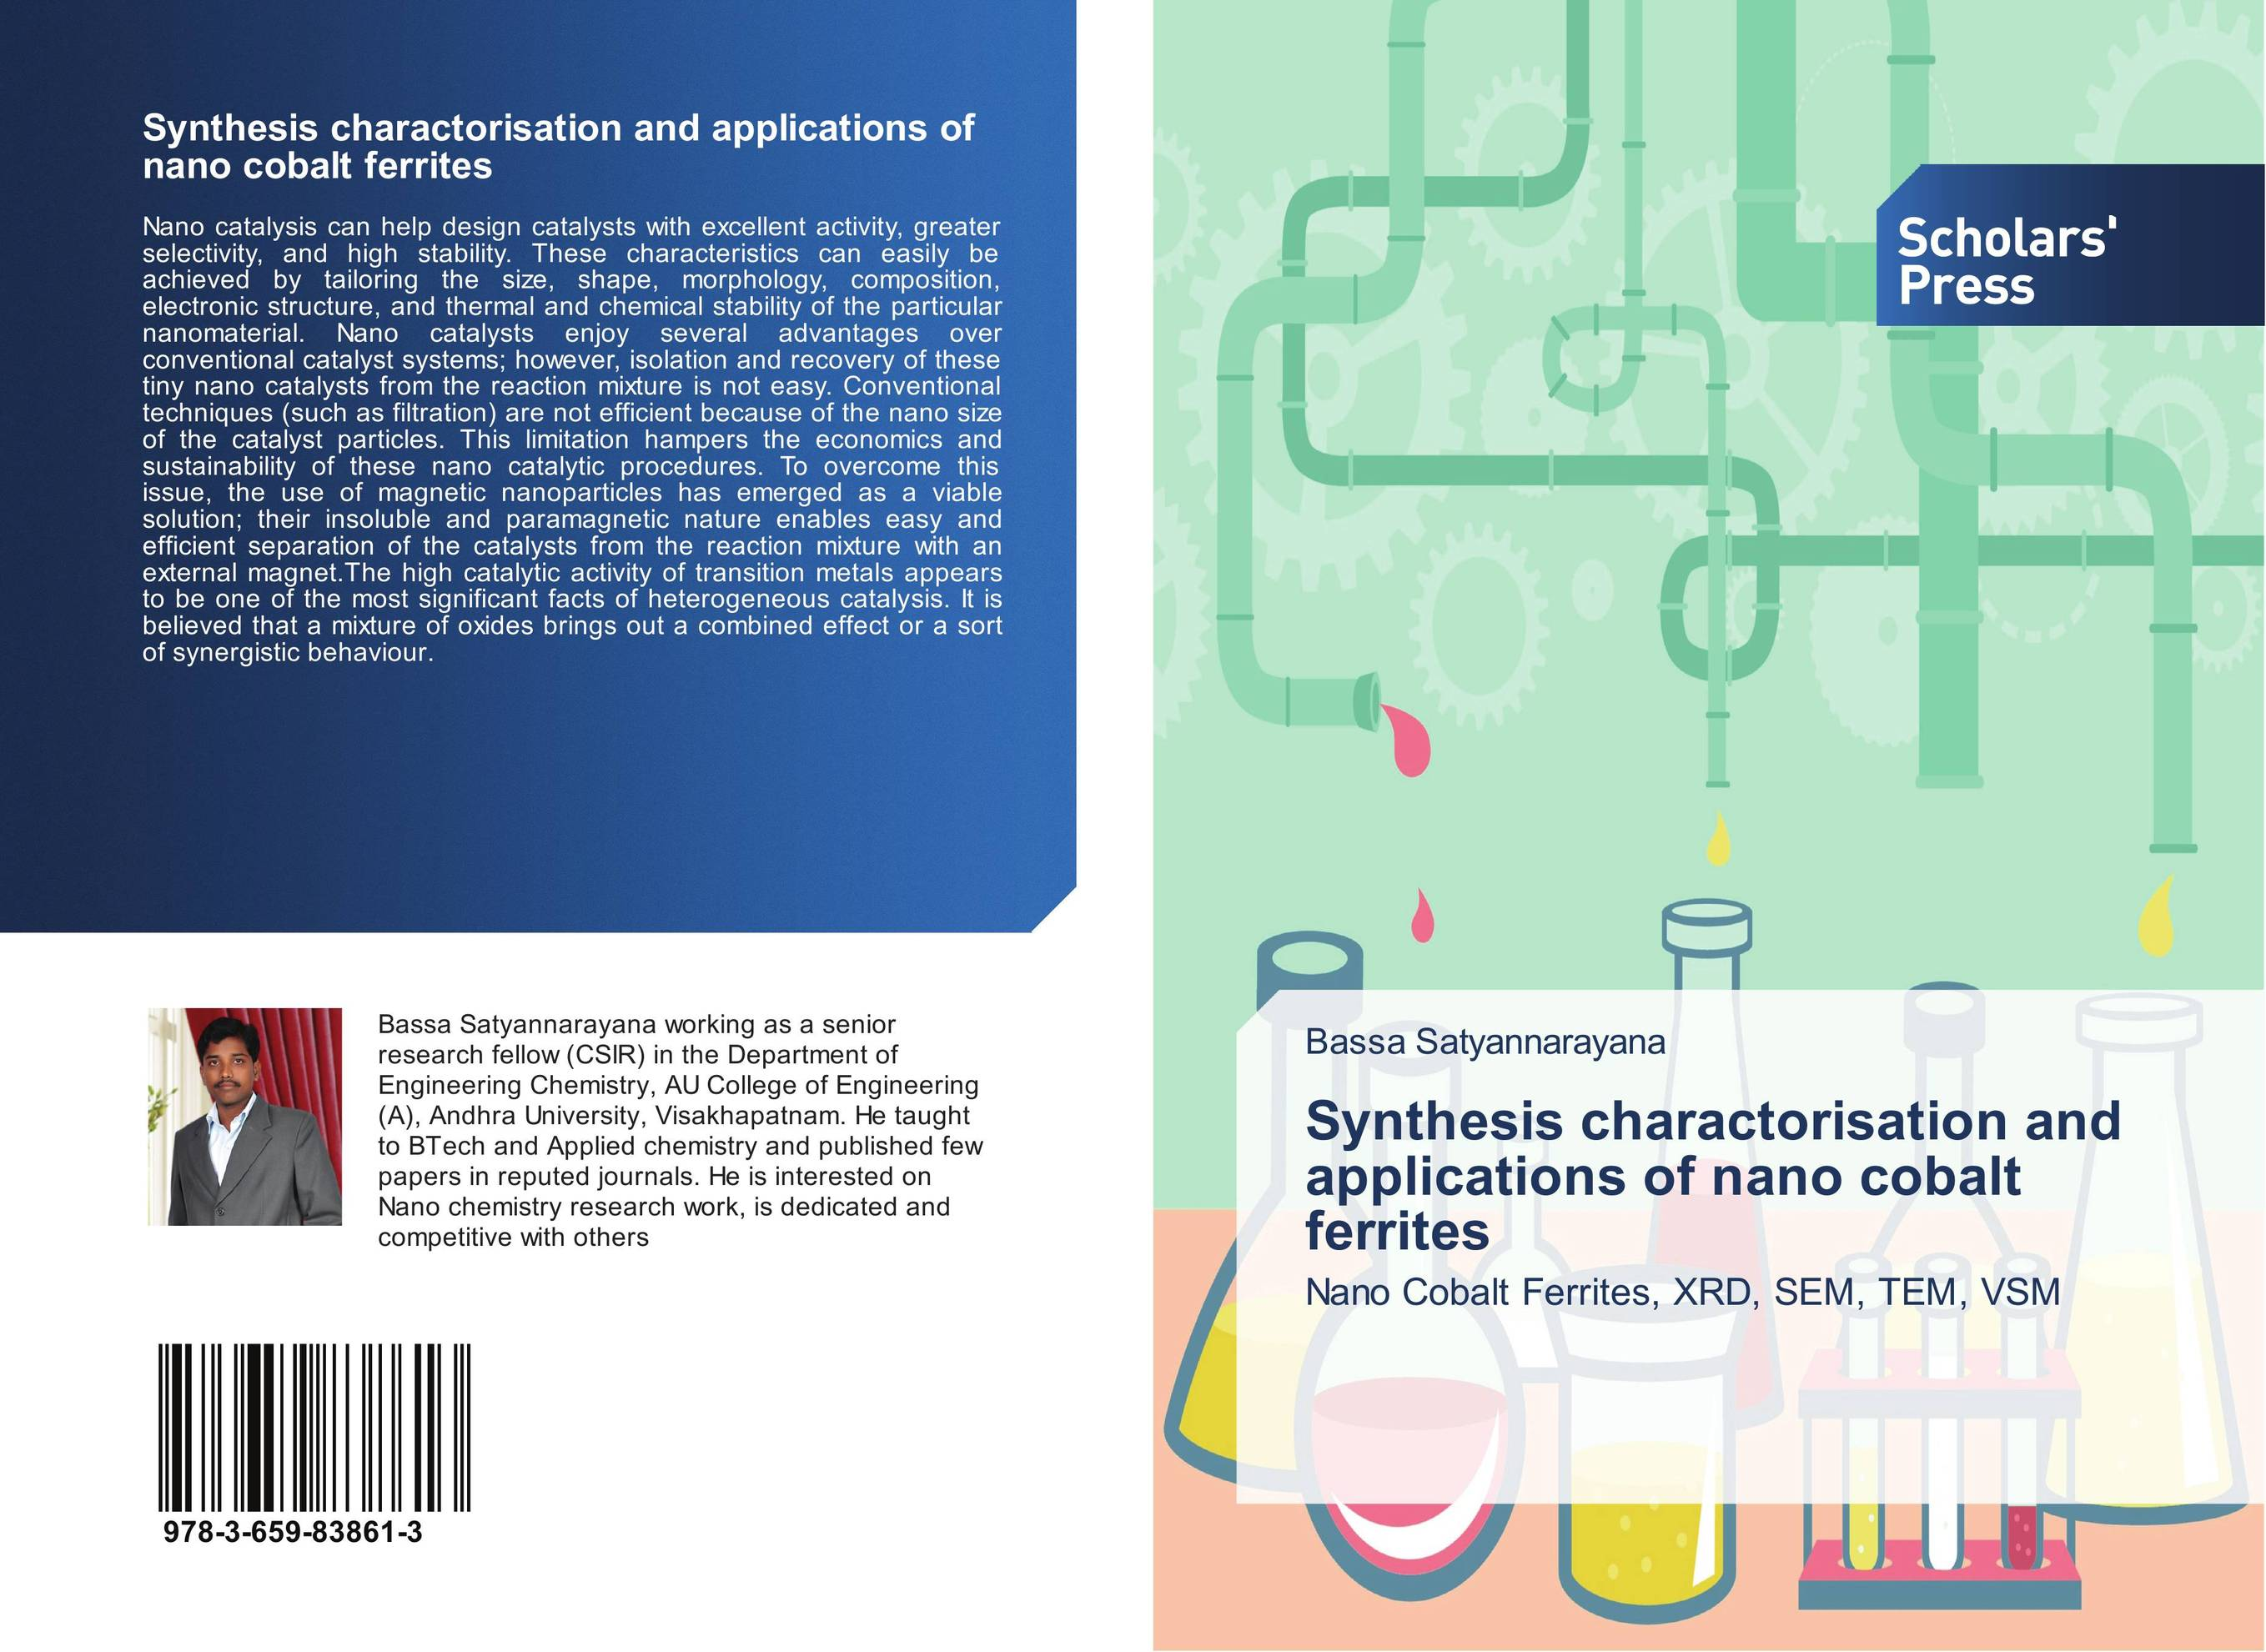 Synthesis charactorisation and applications of nano cobalt ferrites synthesis characterization and applications of nano cdha